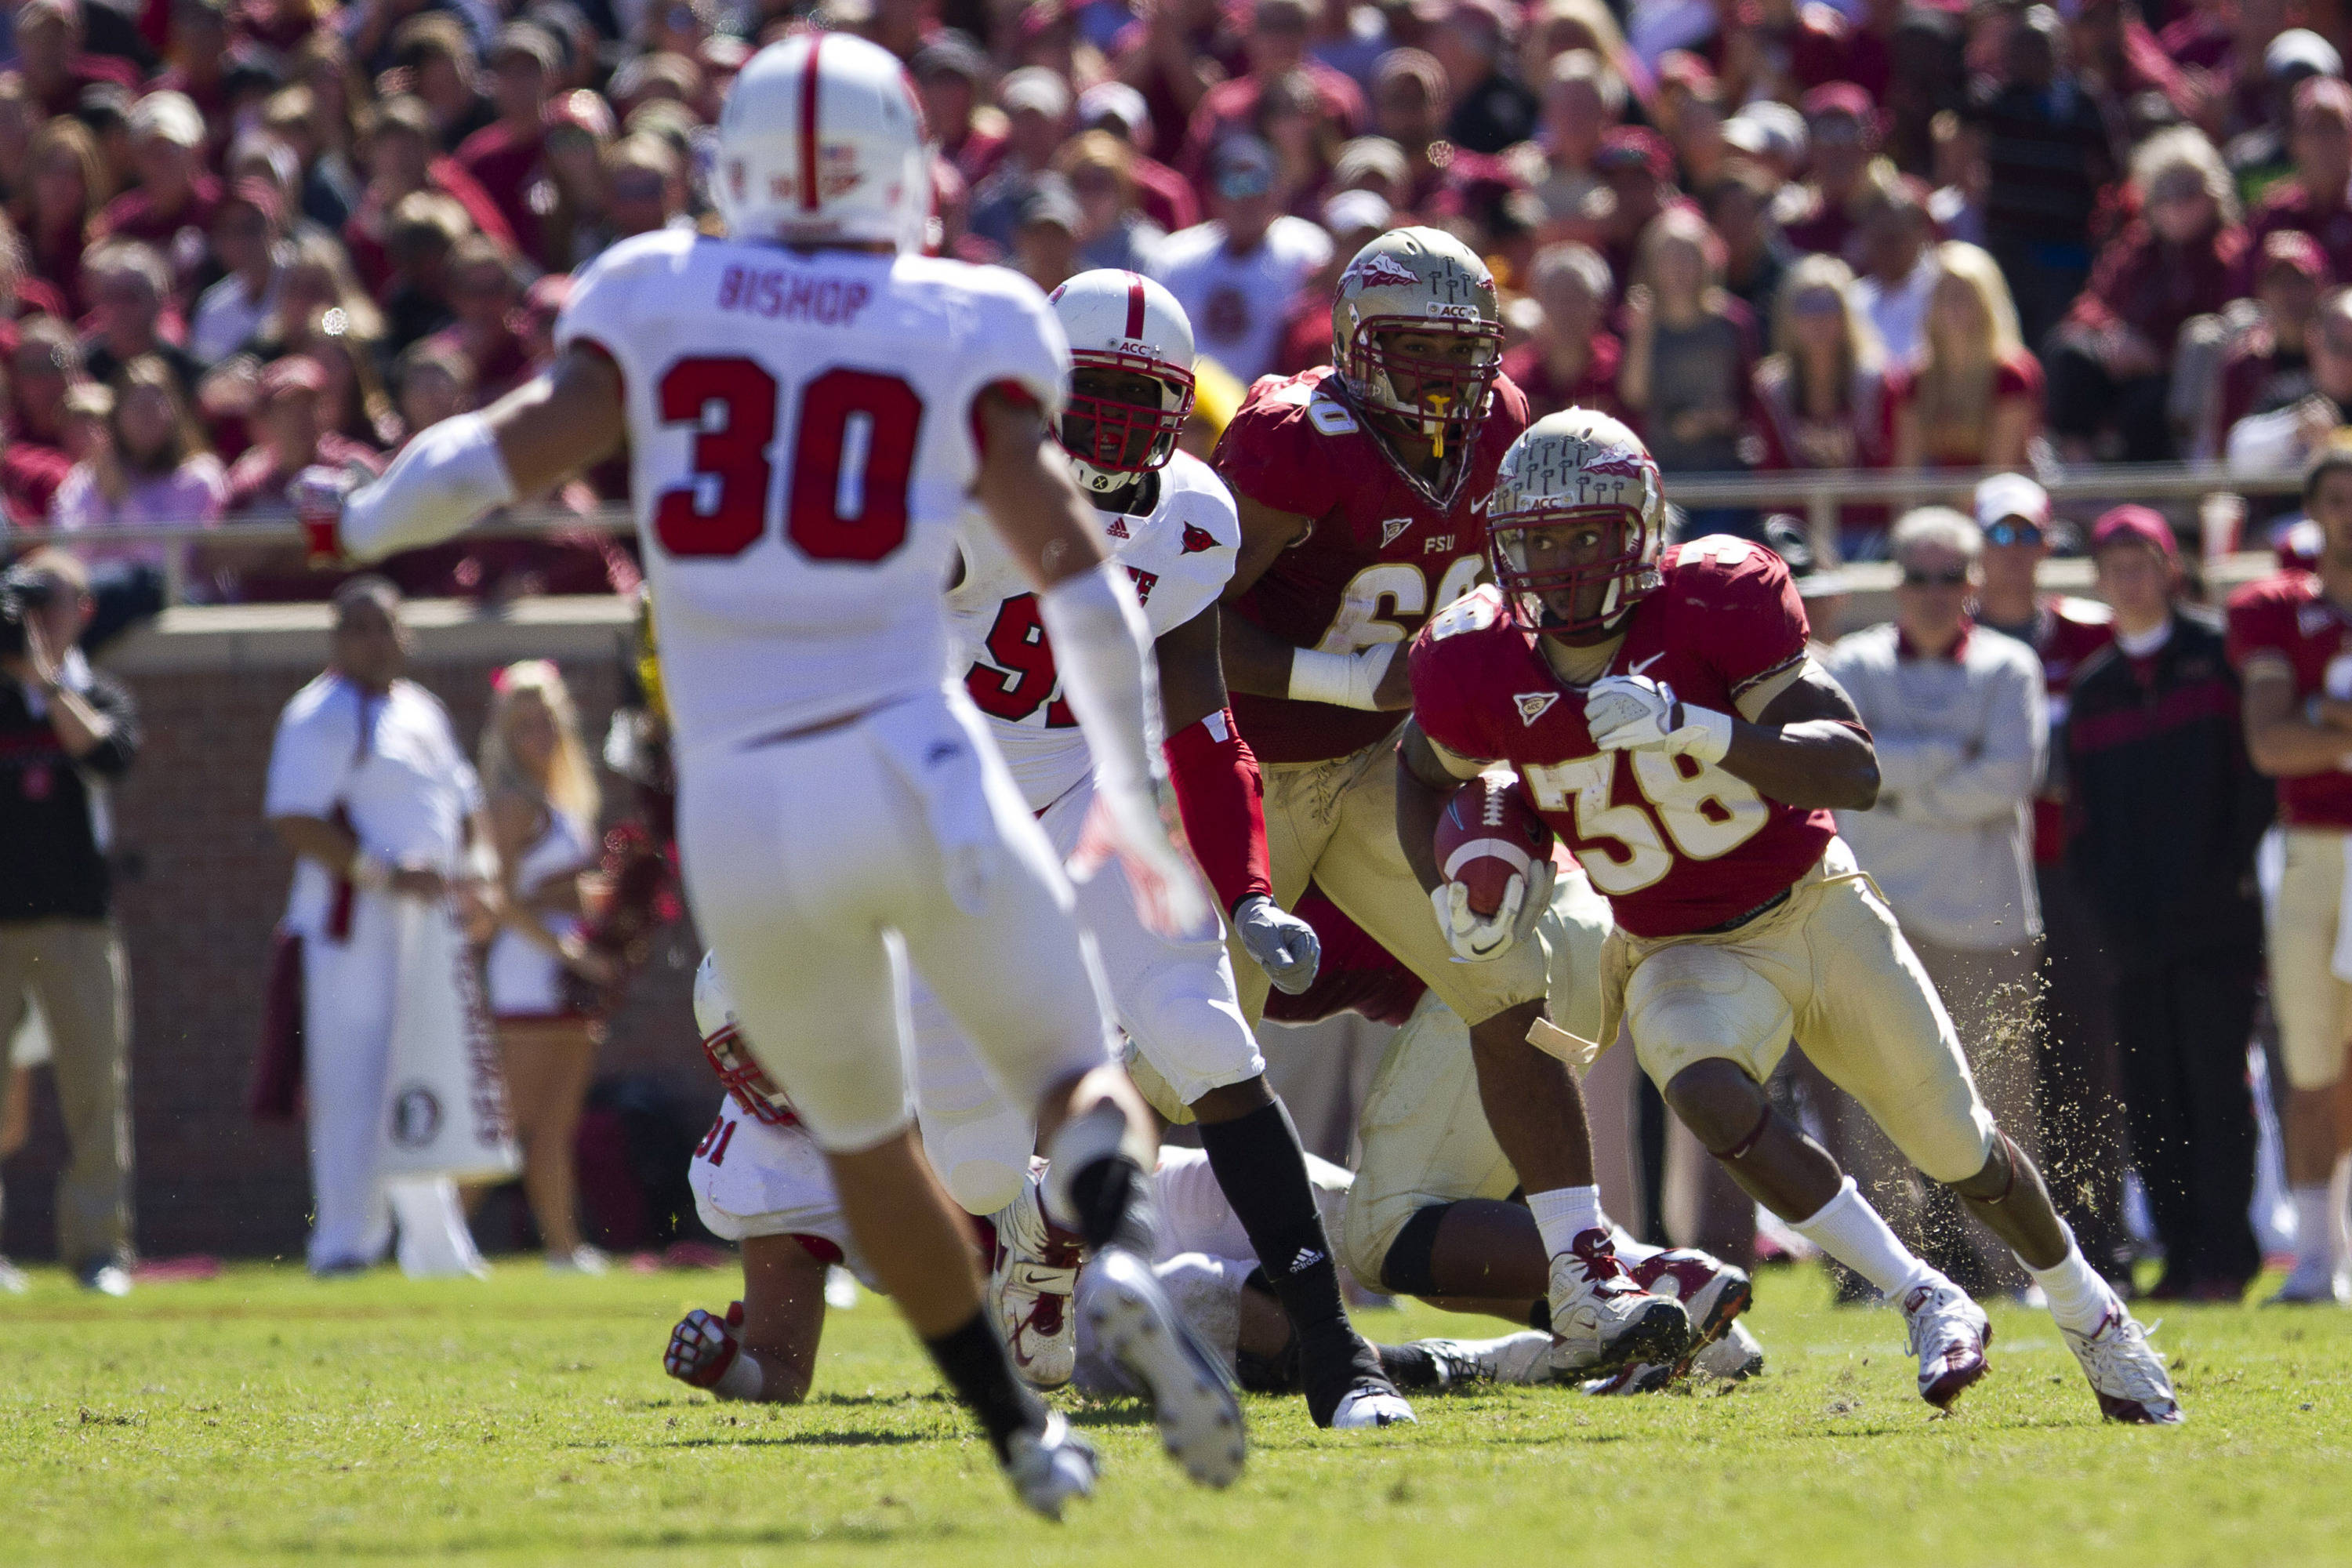 Jermaine Thomas (38) carries the ball down the field during the football game against NC State on October 29, 2011.